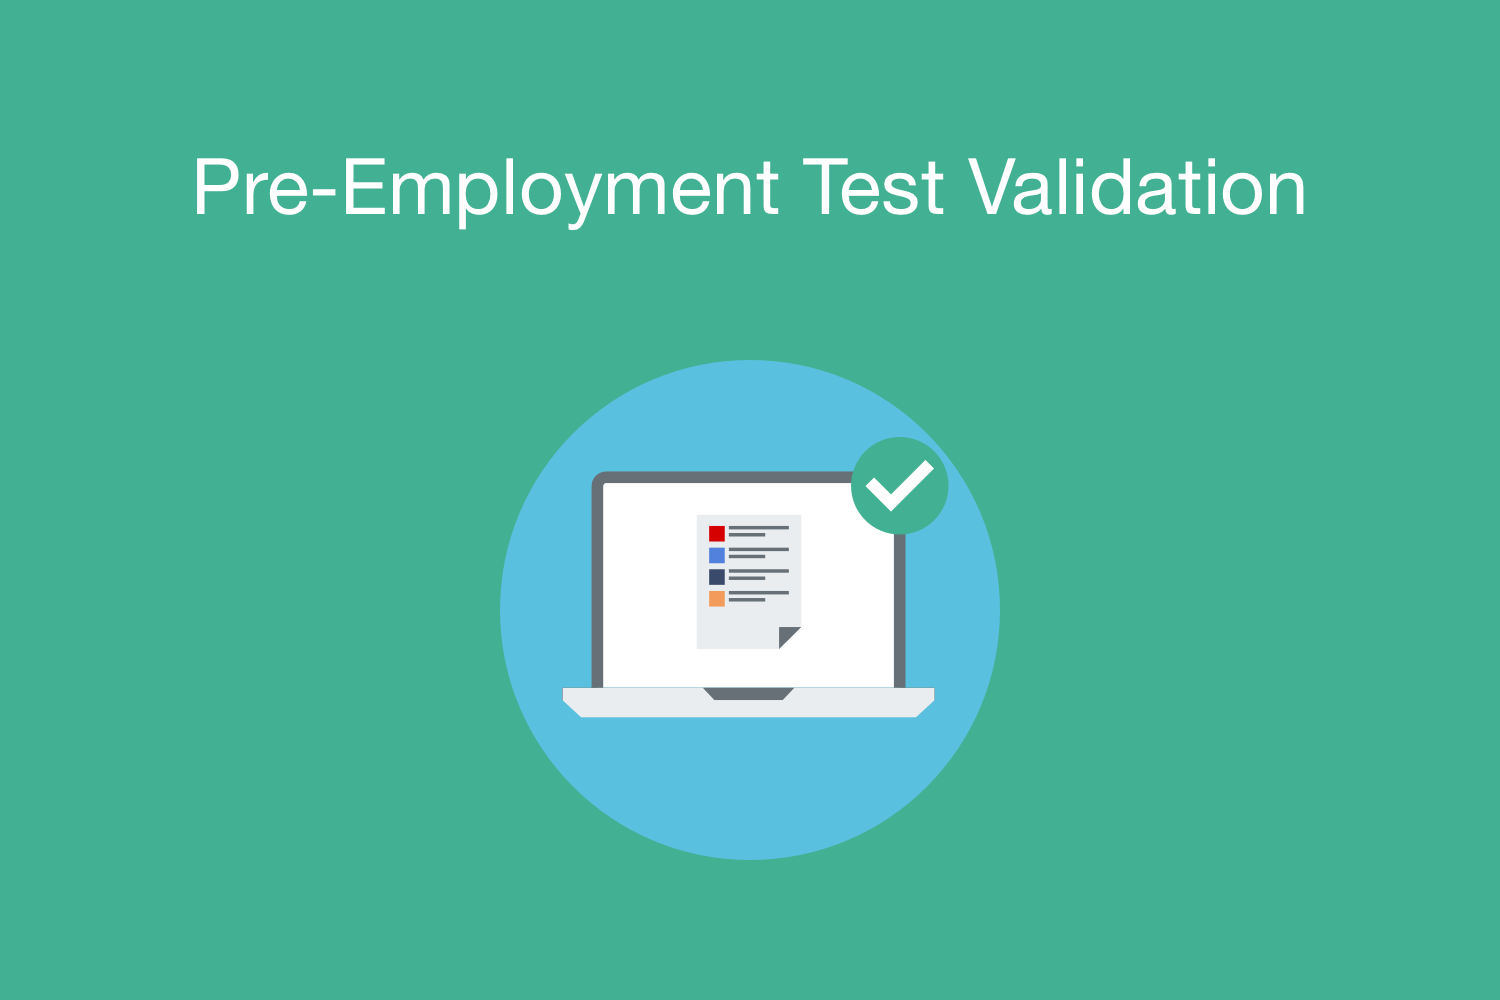 Pre-employment Test Validation